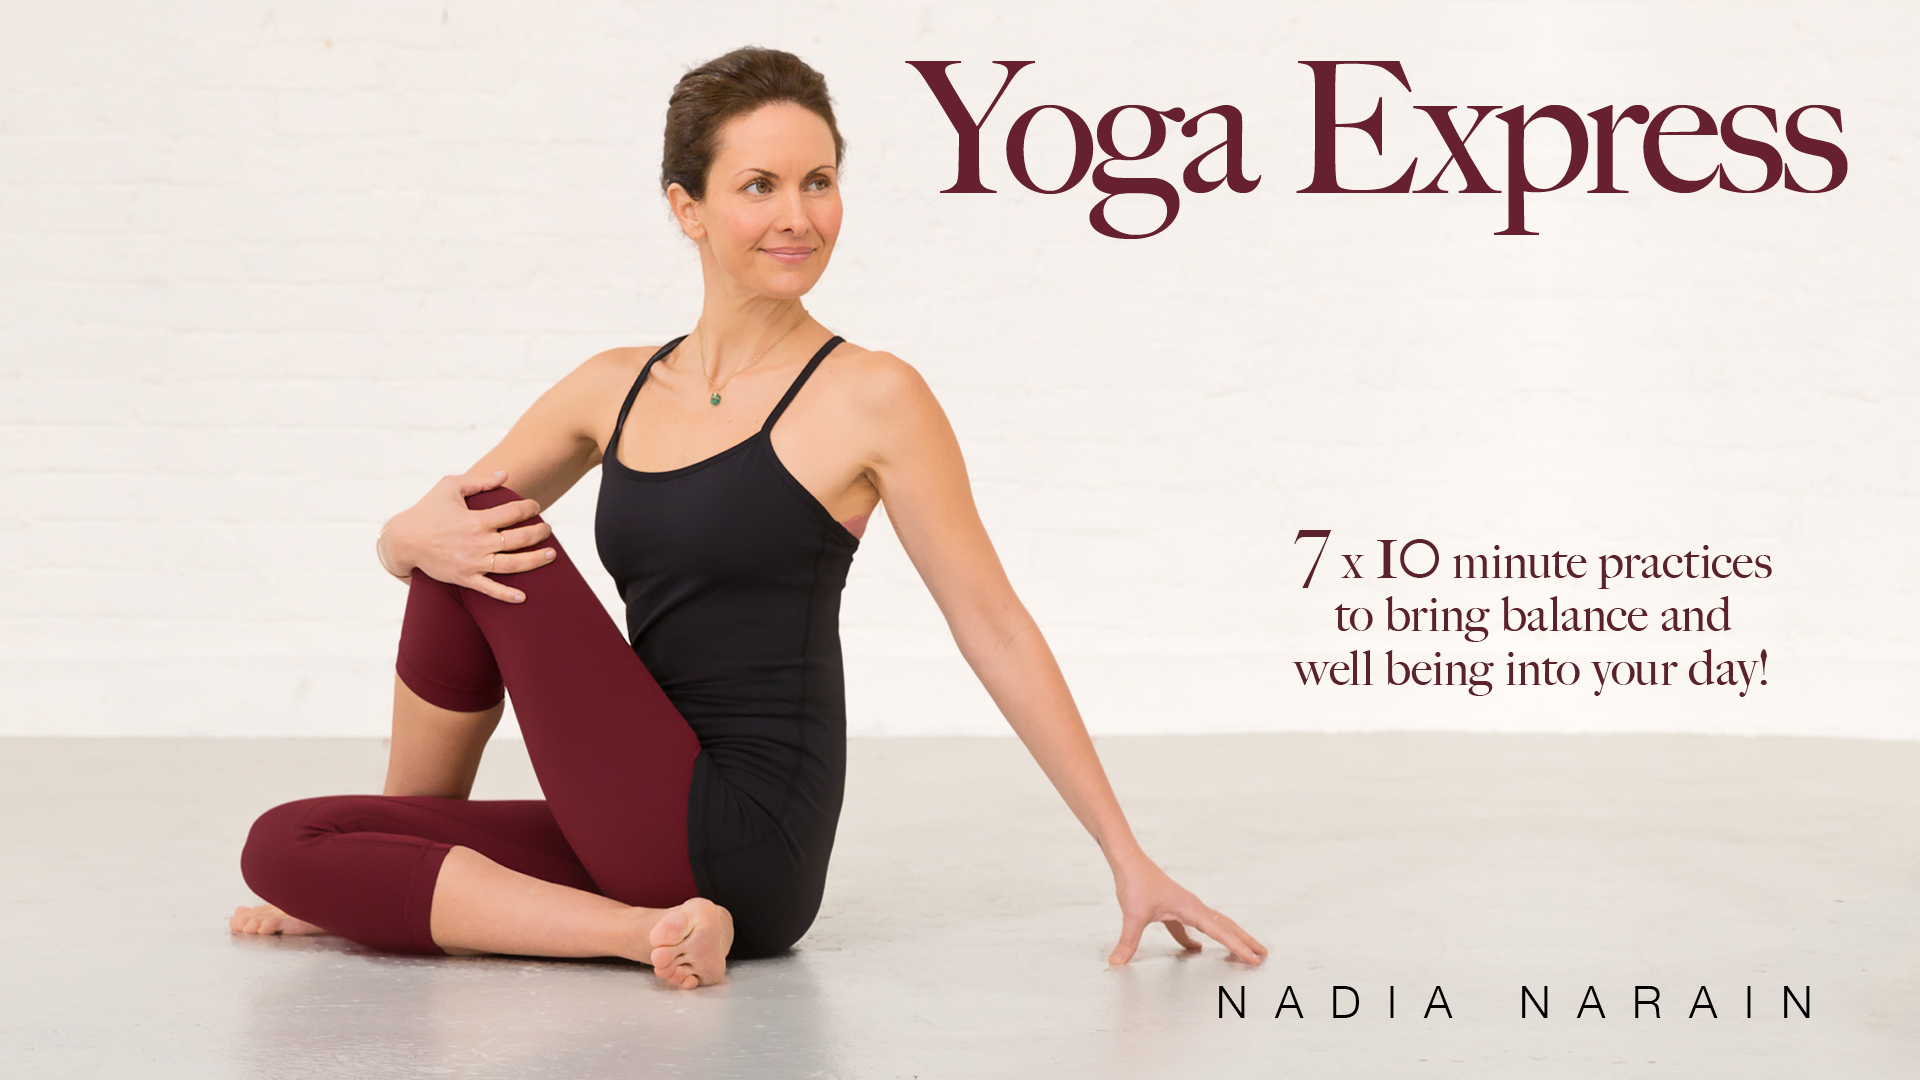 NS17129_NadiaNarain_YogaExpress_Amazon16x9